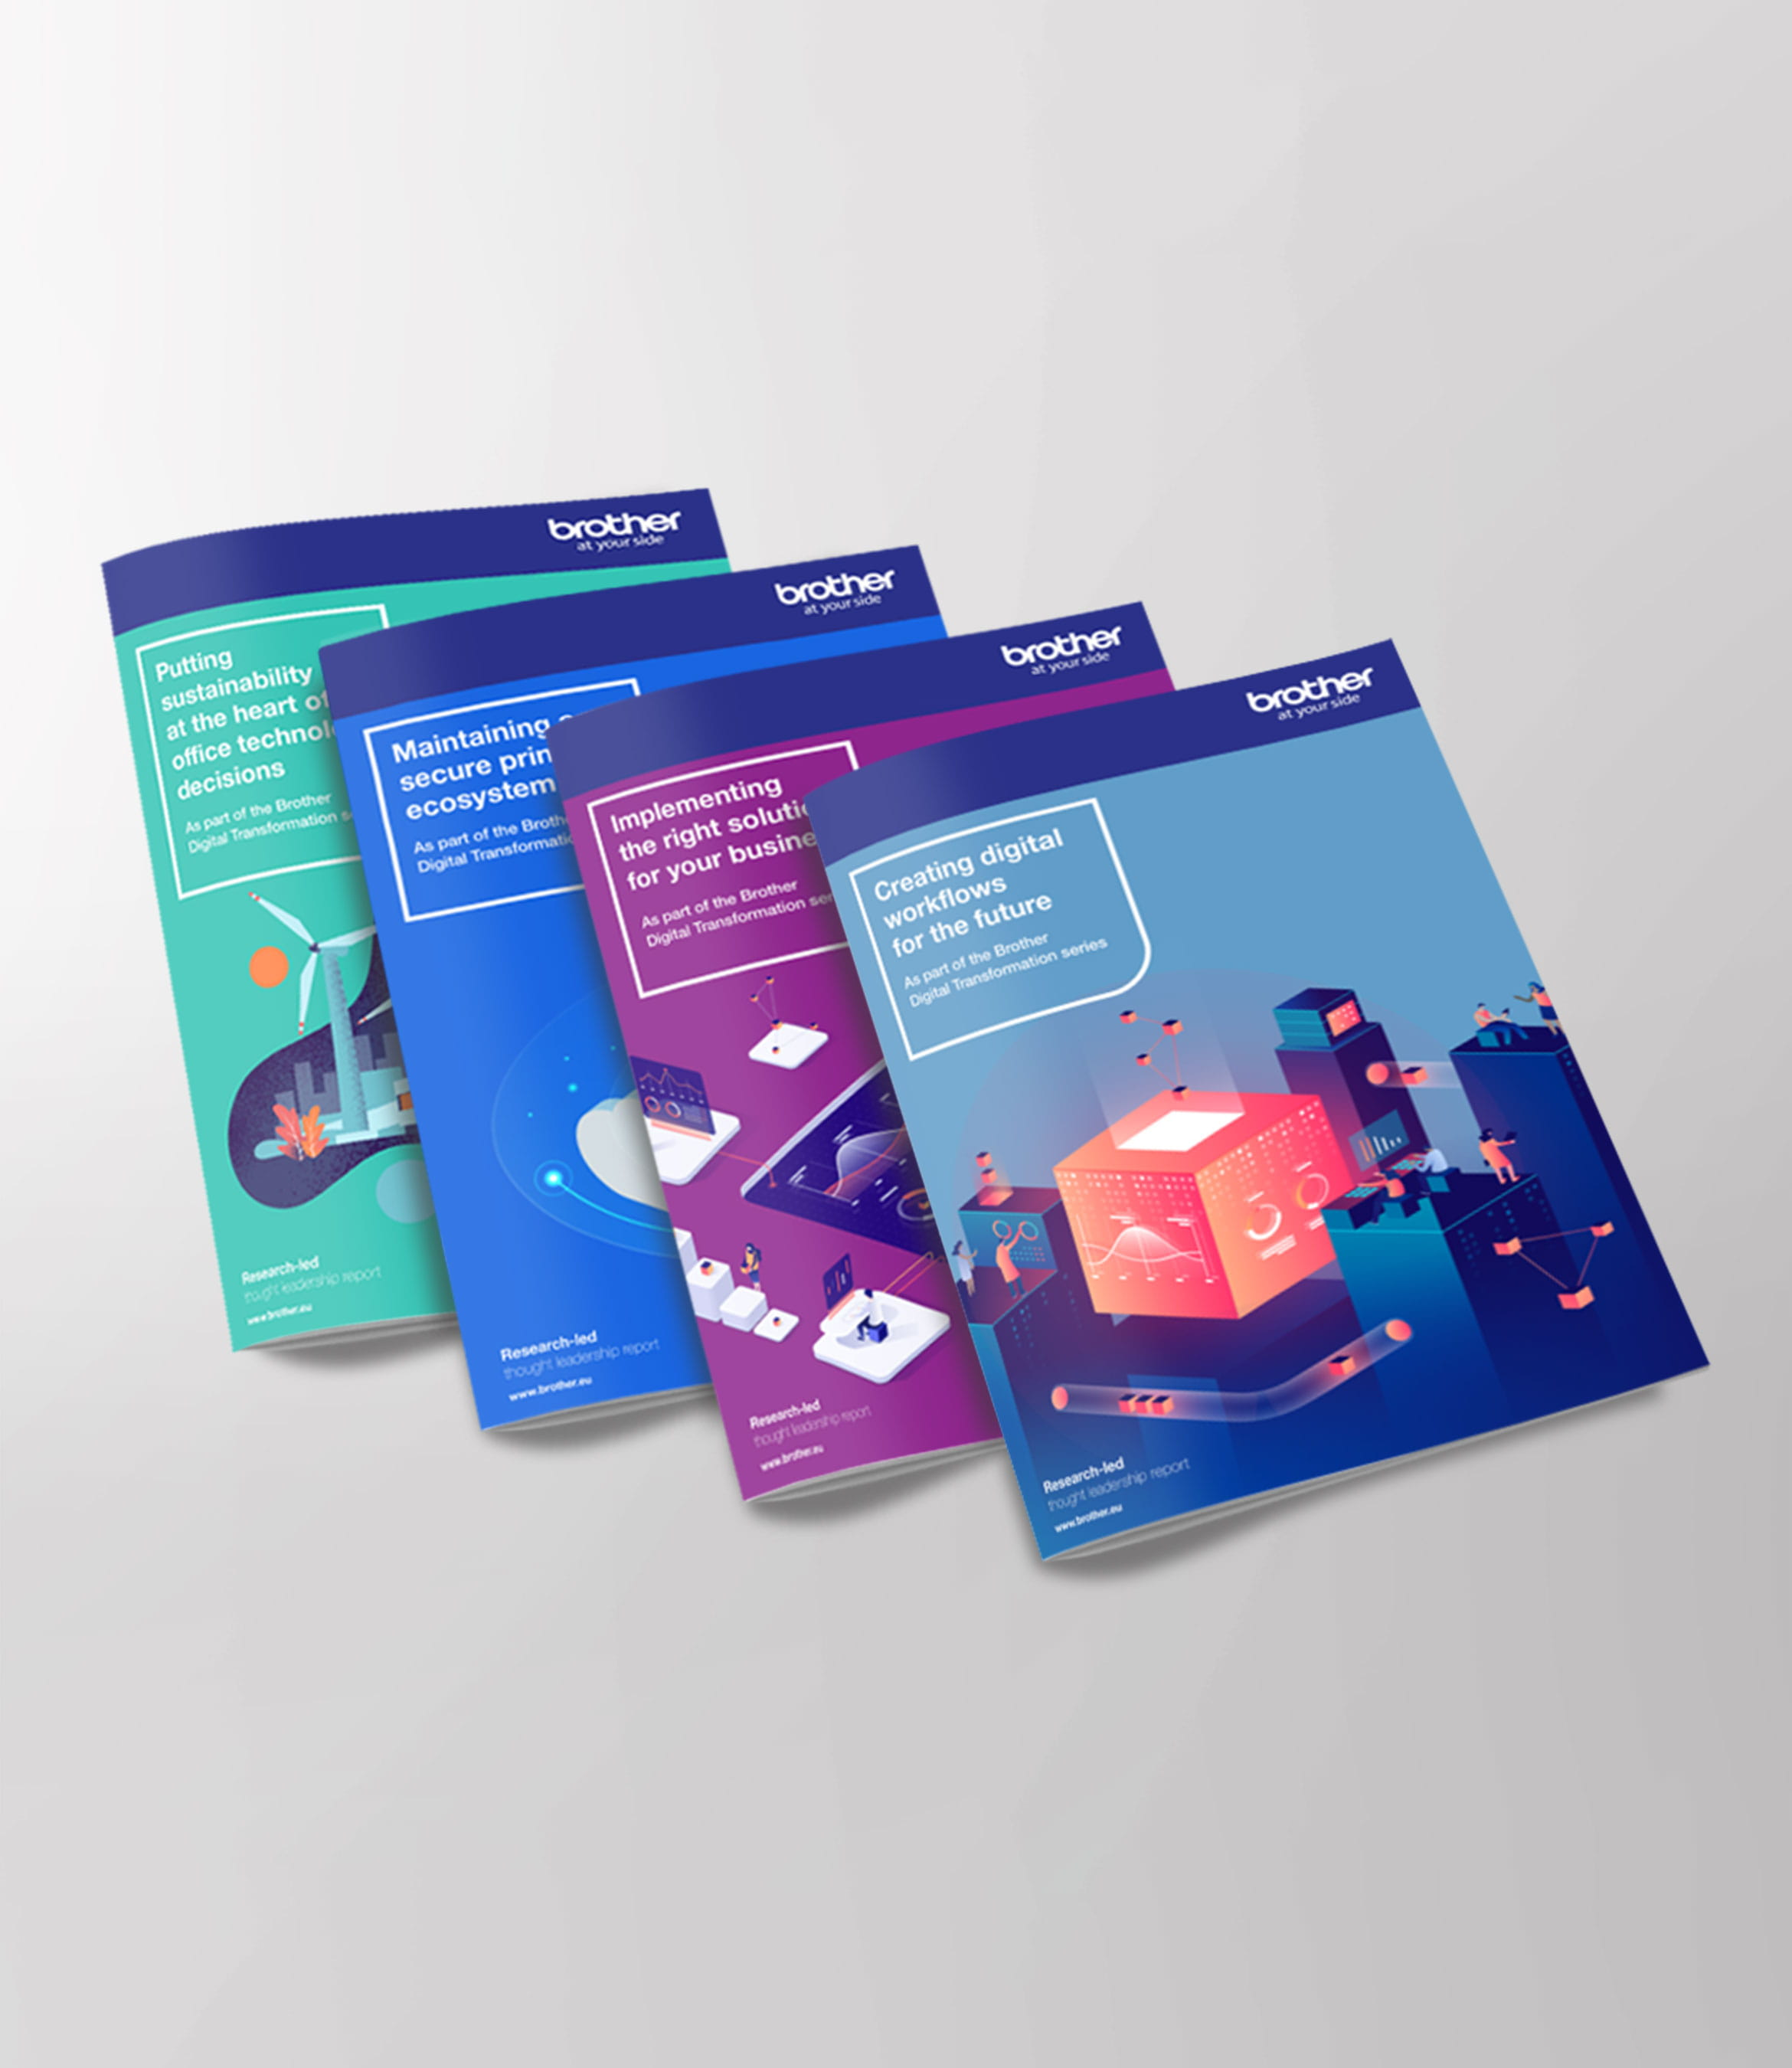 Four digital transformation whitepaper insight reports from Brother on display overlapping each other